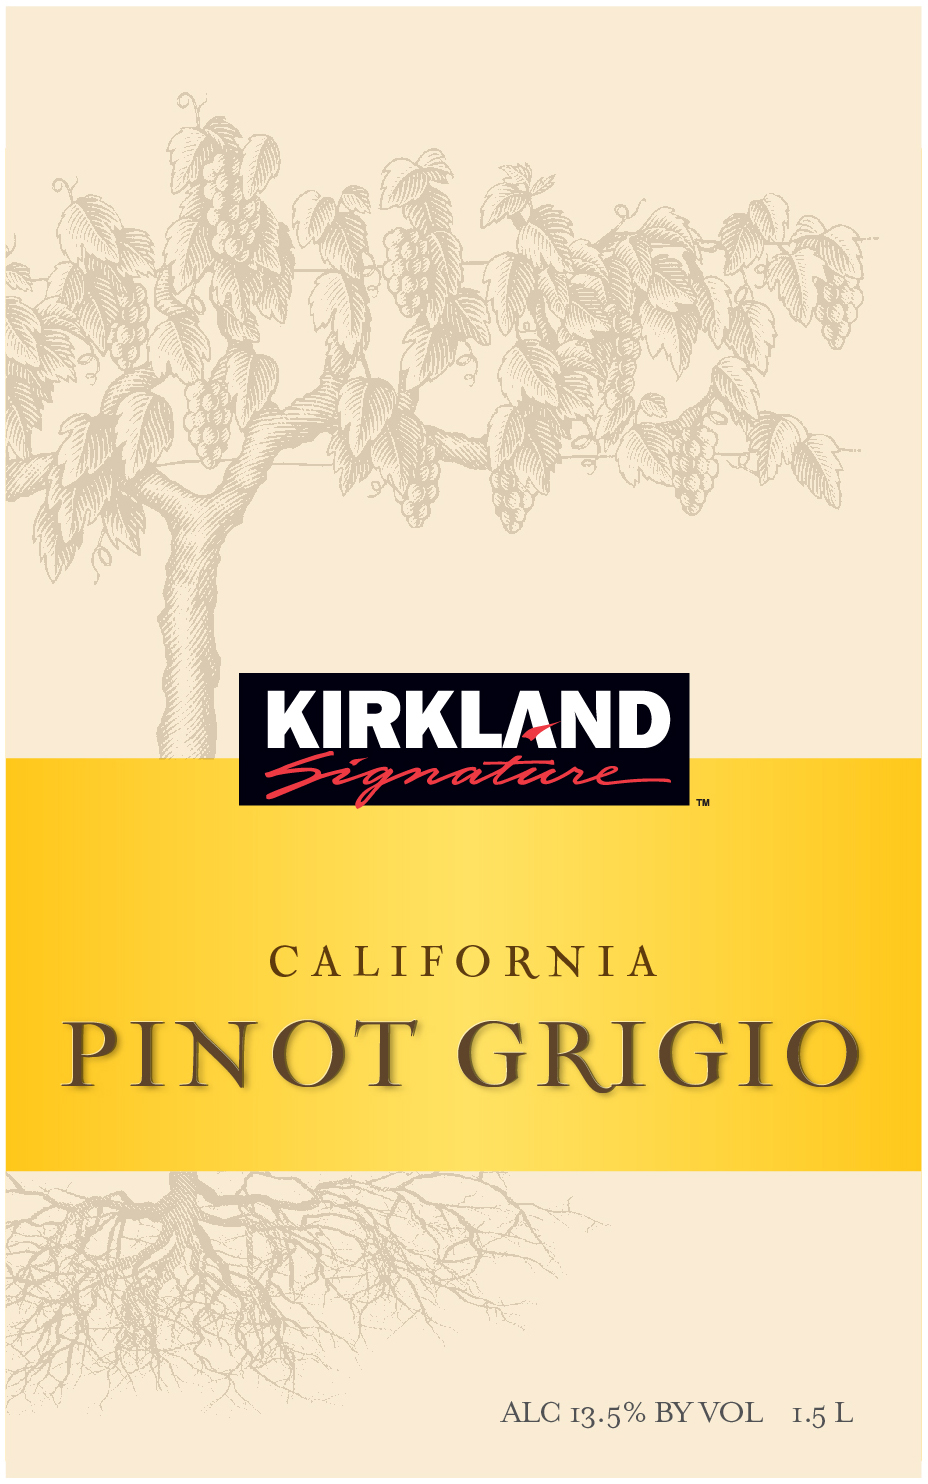 The Kirkland Signature California Pinot Grigio is 100% Estate Grown. This is a classic full-bodied Pinot Grigio with intense ripe fruit flavors of grapefruit and pineapple with a hint of mineral, finishing with notes of honey and apple.